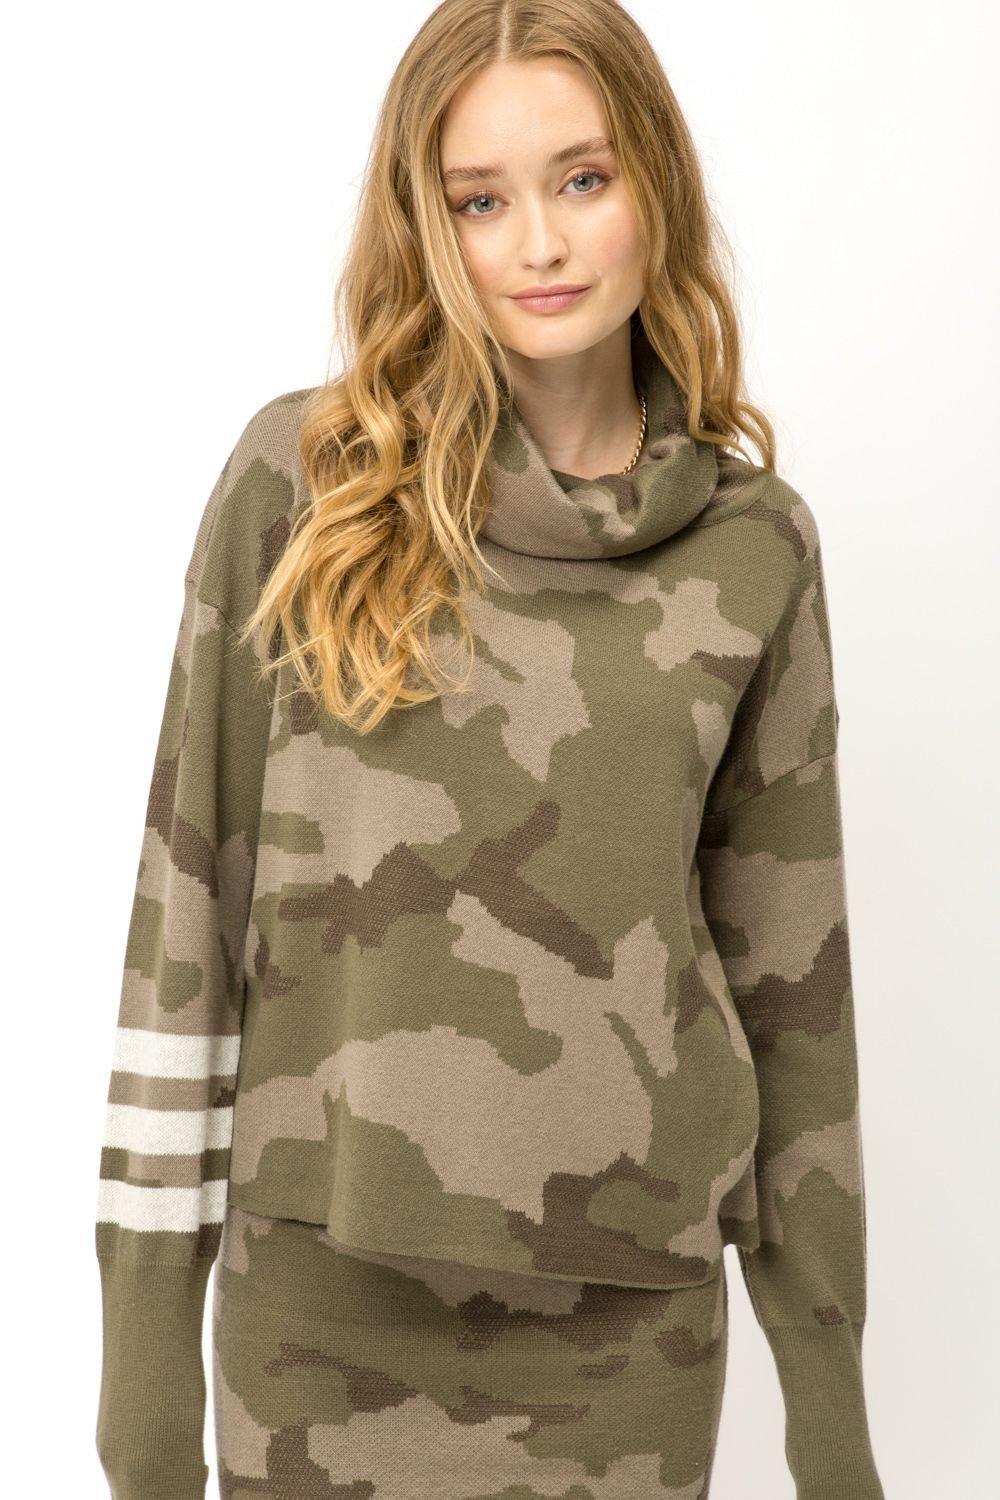 Camo Turtle Neck Crop Sweater from Mystree